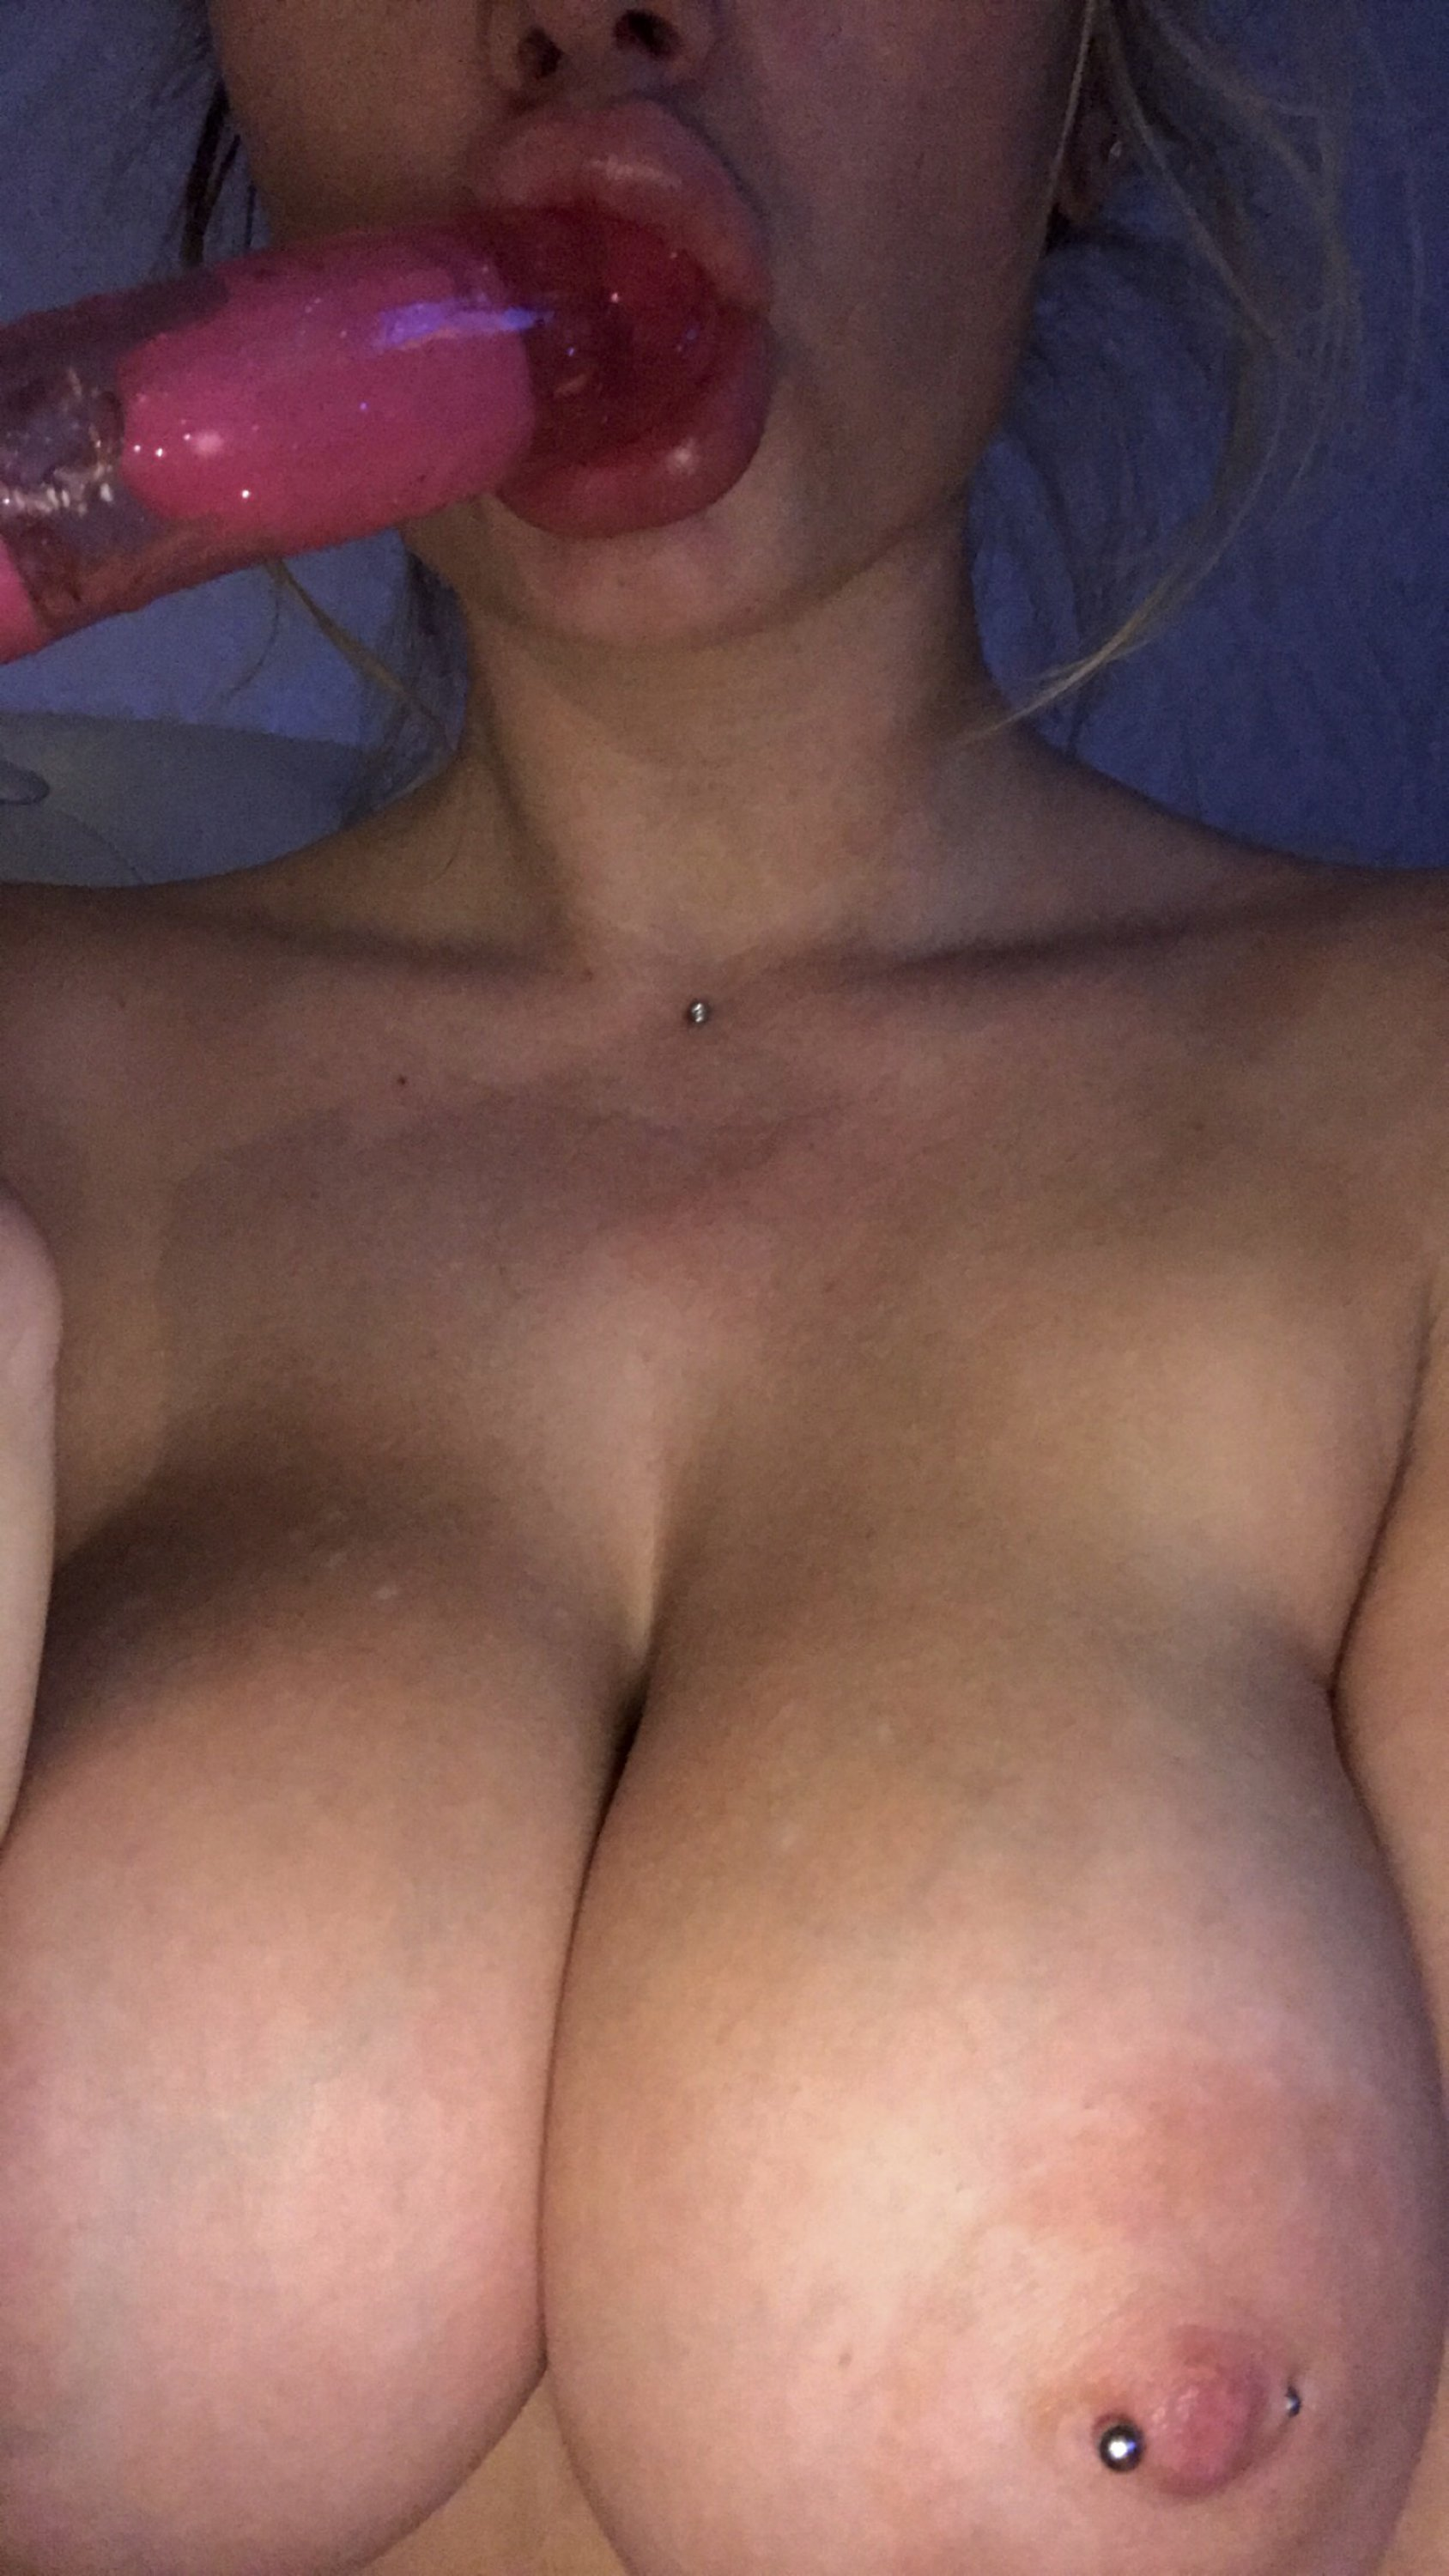 Lucy Nicholson Leaked 0255